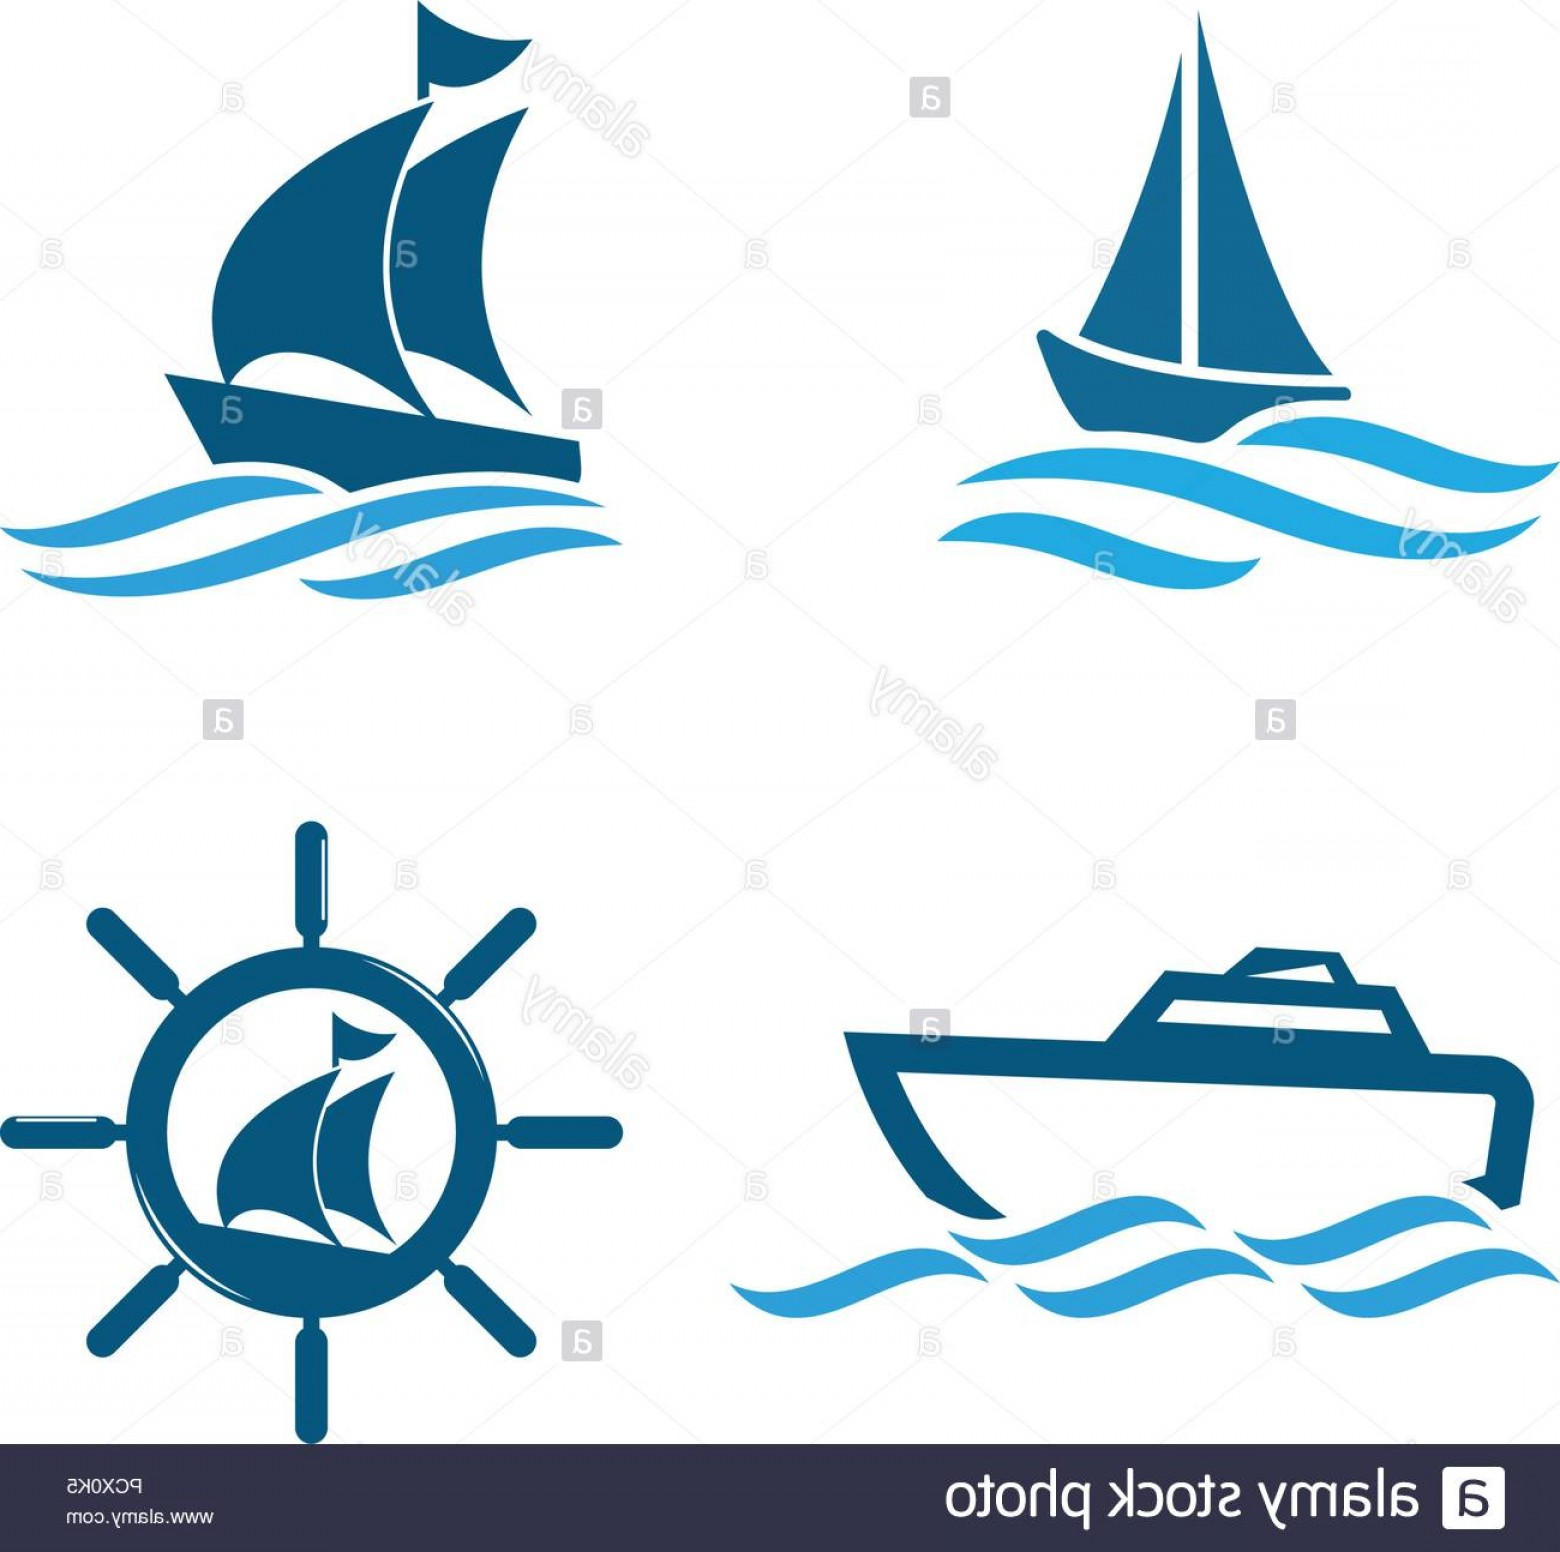 Boat Vector Art Graphics: Illustration Of Boat Graphic Design Template Vector Image